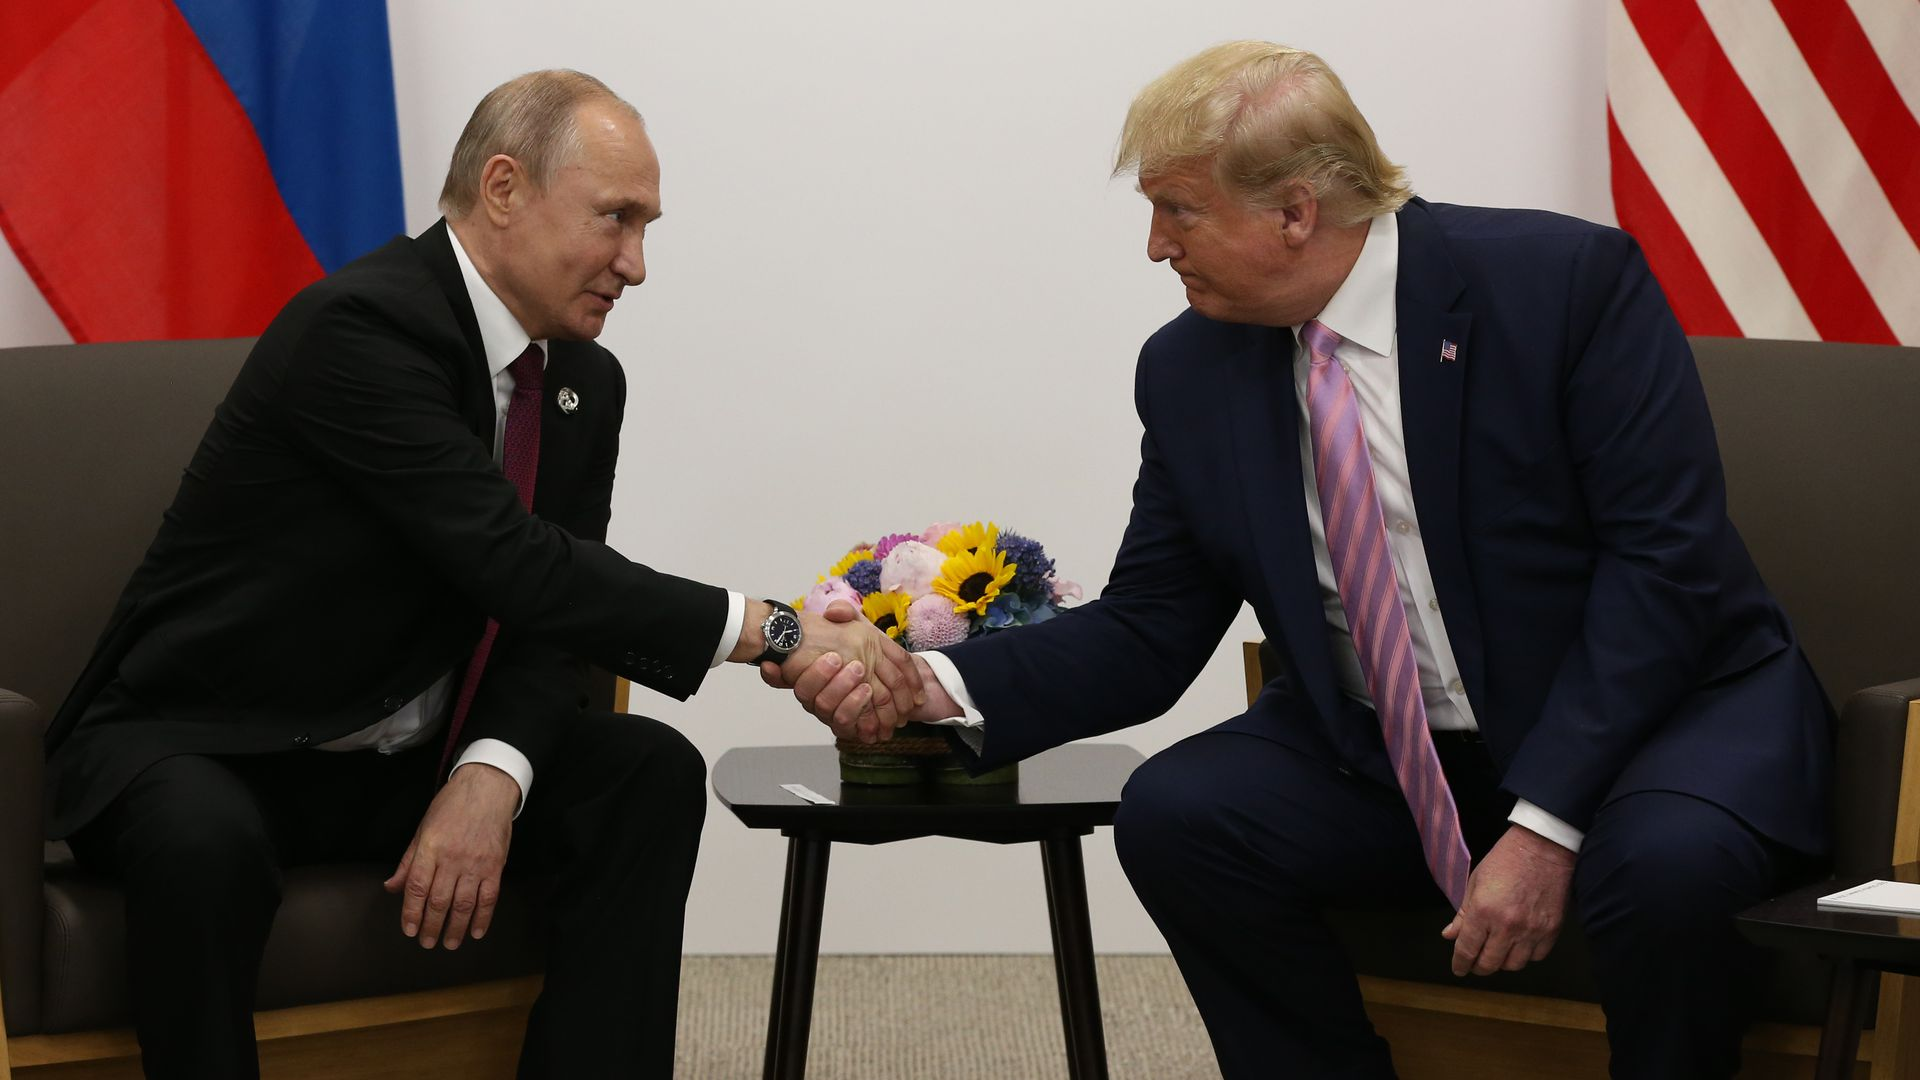 President Trump and Russian President Vladimir Putin shaking hands at the G20 Summit in Japan